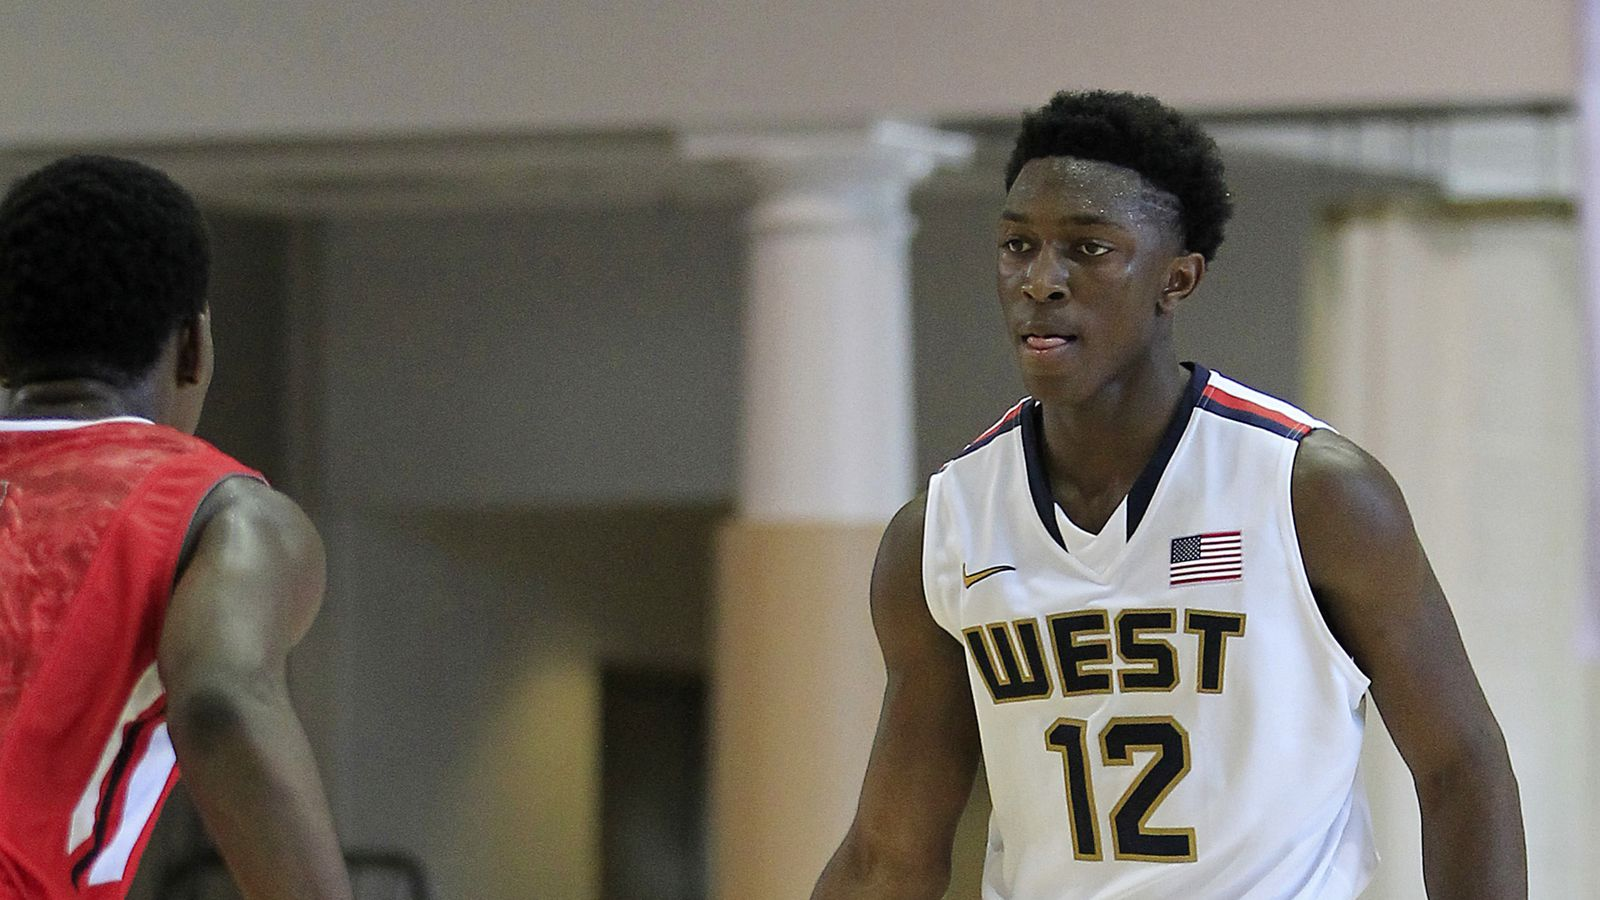 2013 Recruits Uk Basketball And Football Recruiting News: Arizona Basketball Recruiting: Stanley Johnson Reportedly